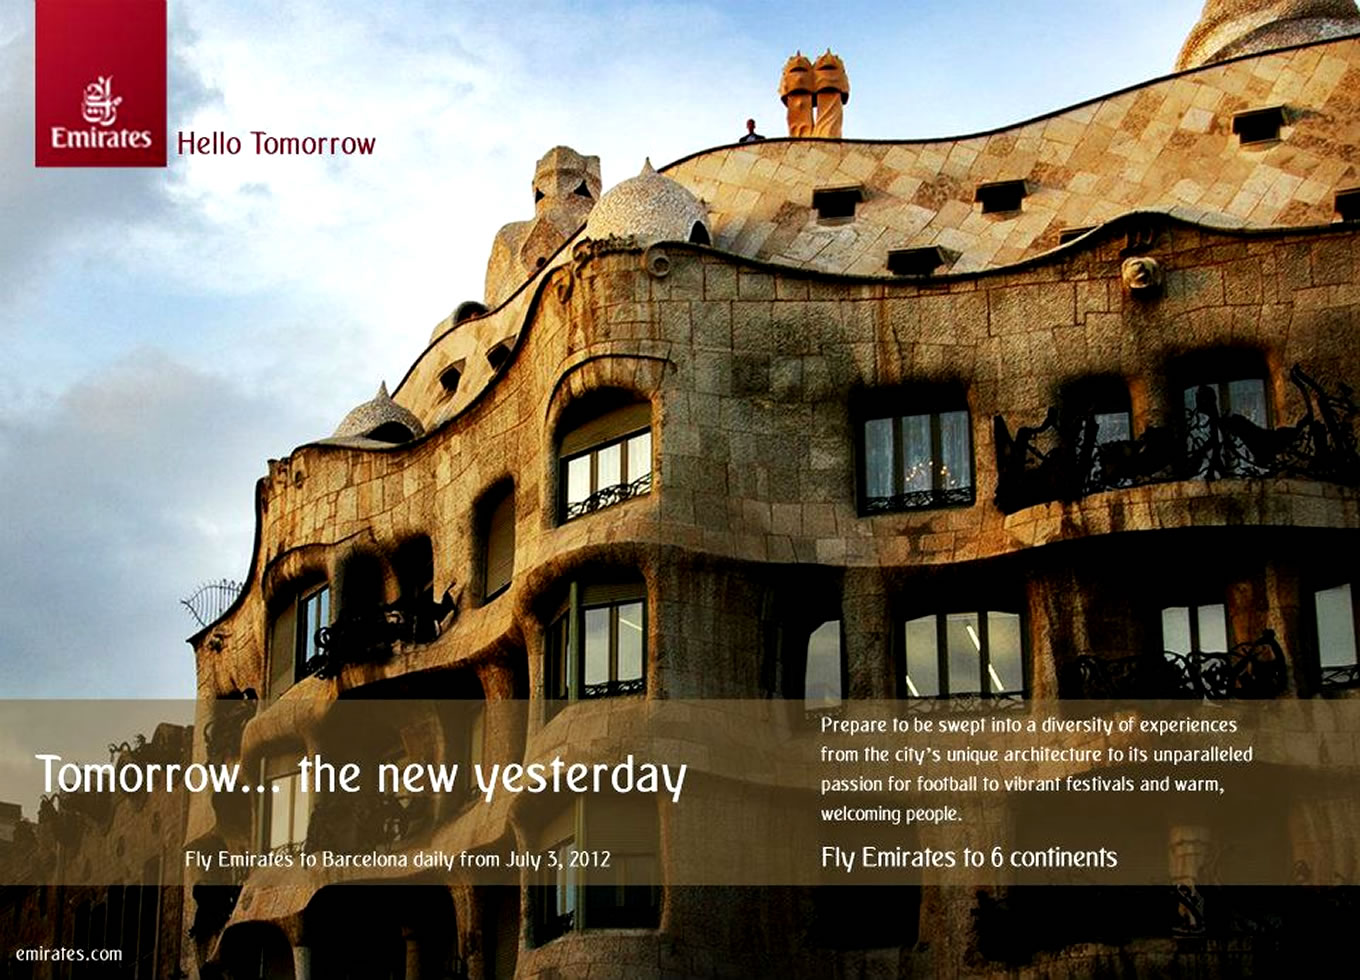 Visit Barcelona, Hello Tomorrow Marketing Campaign by Emirates Airlines